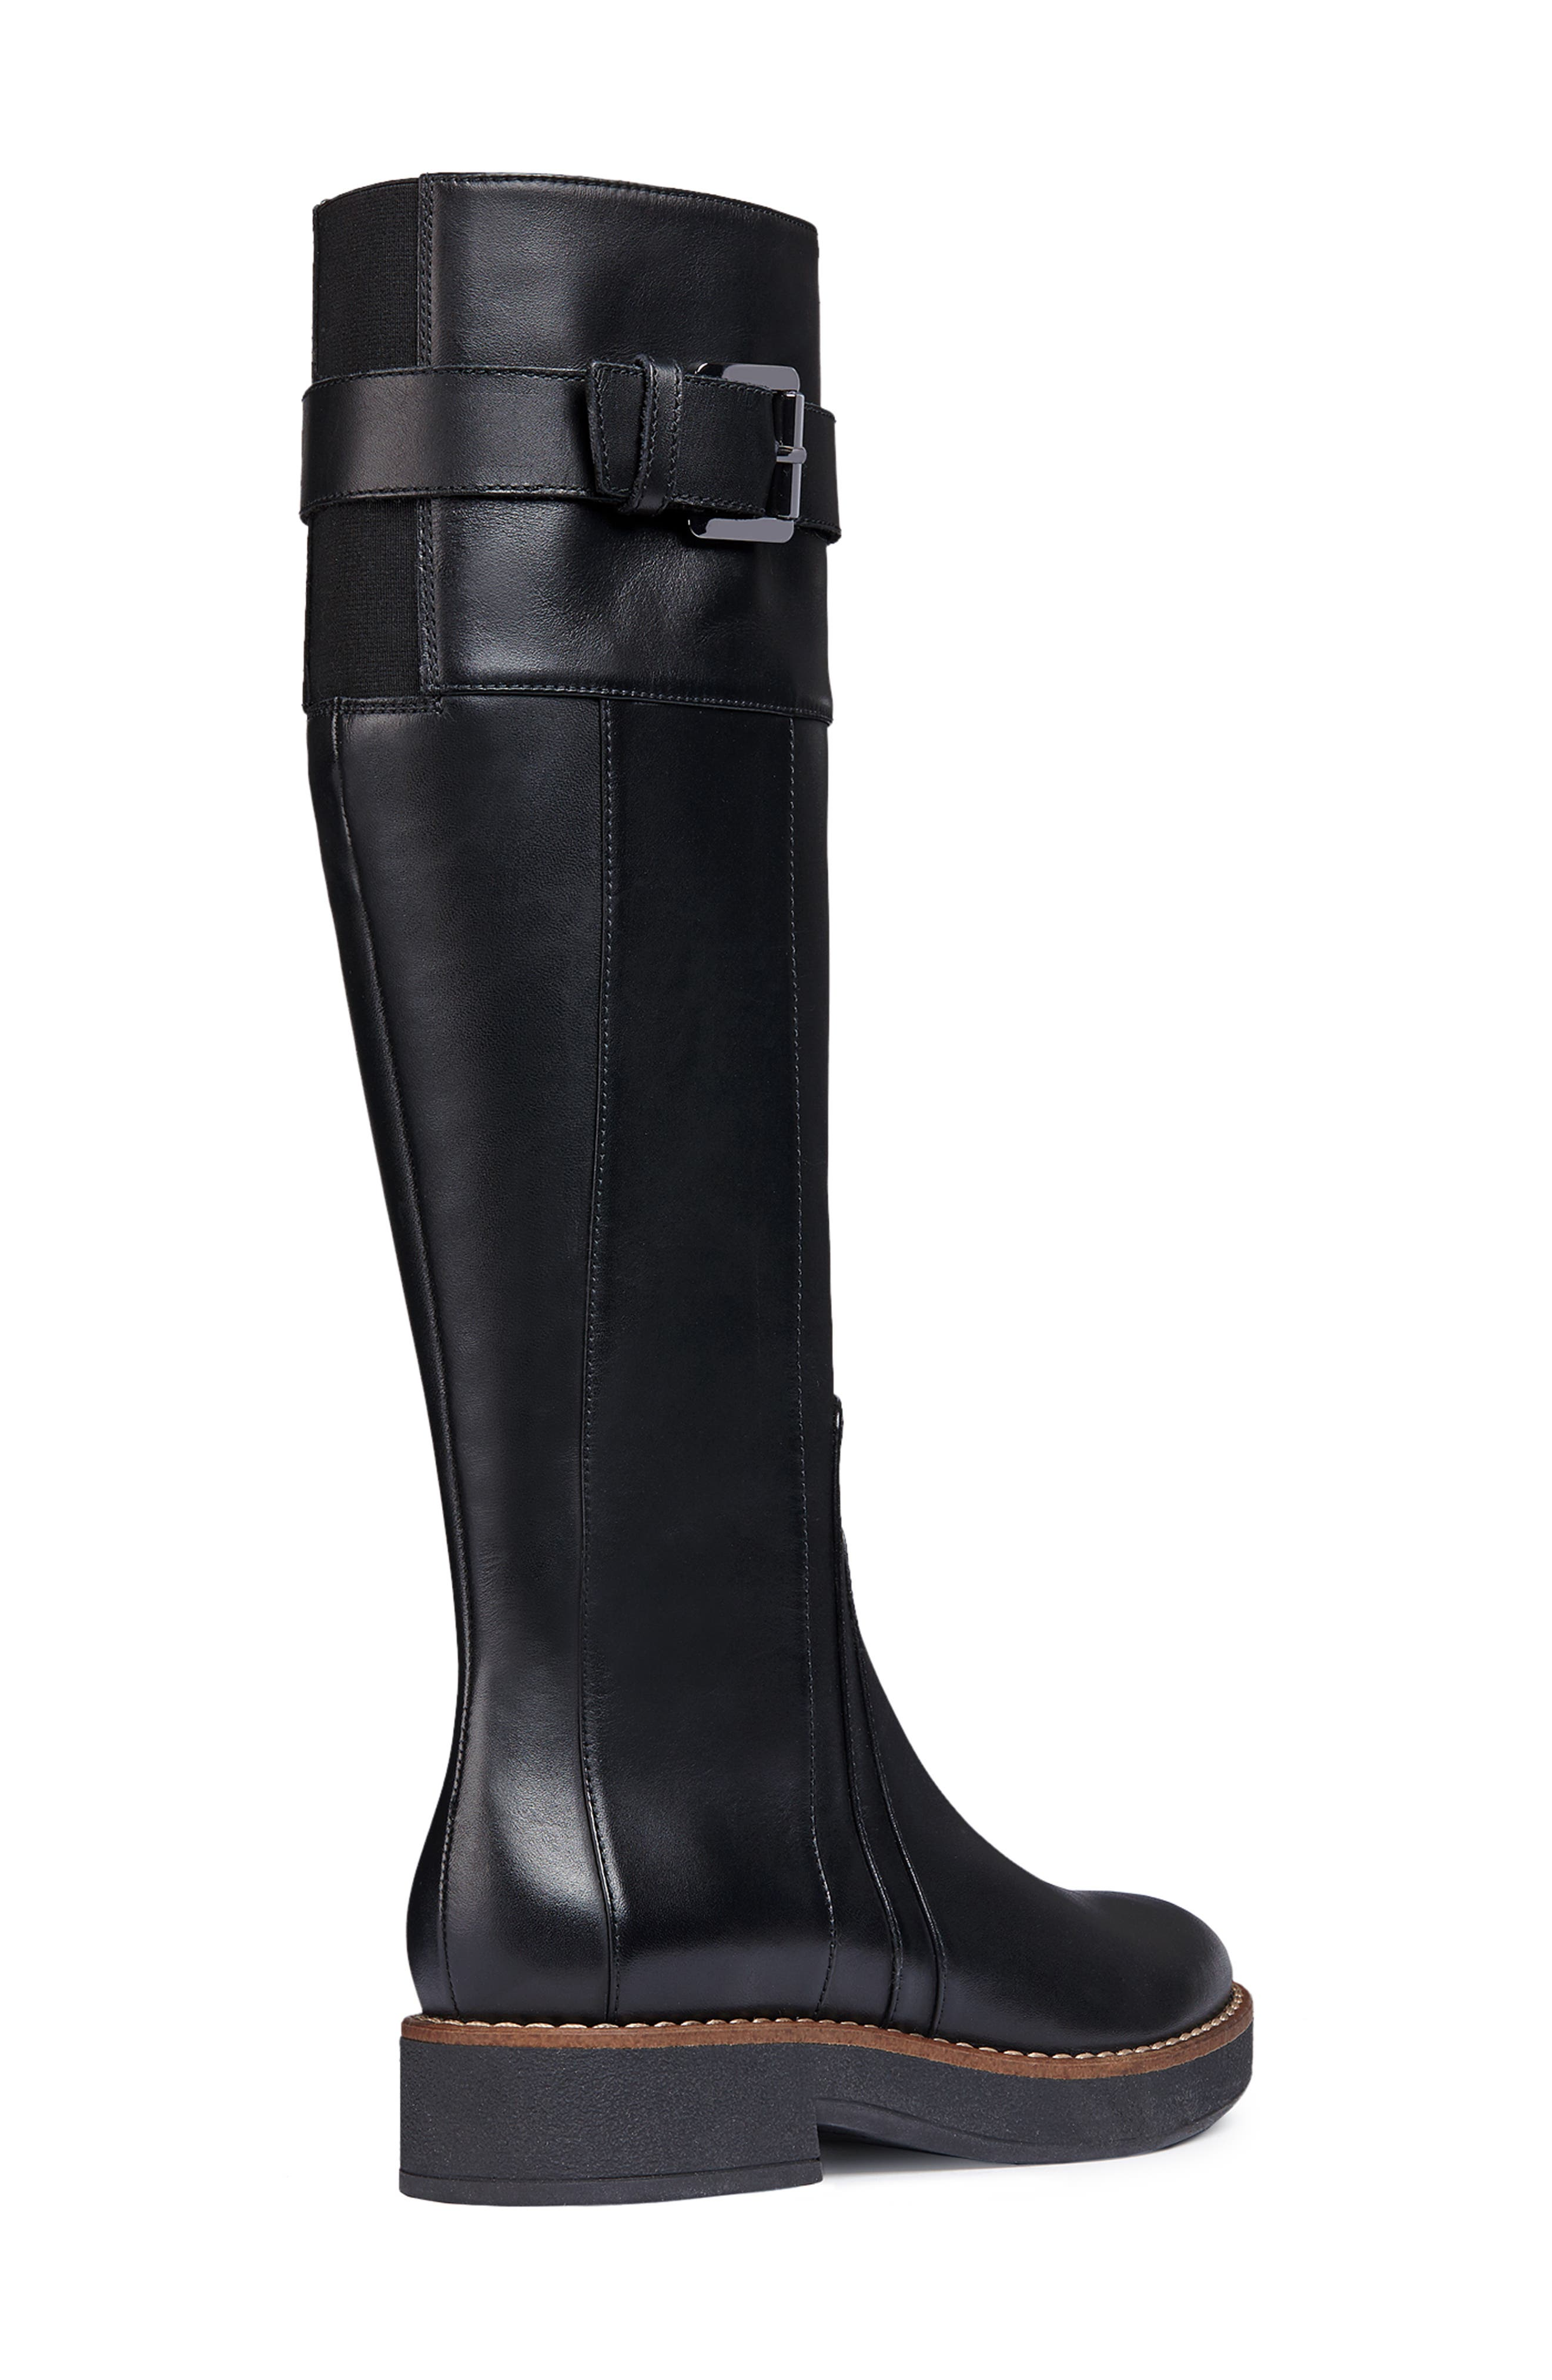 Adrya Knee High Boot,                             Alternate thumbnail 7, color,                             BLACK LEATHER